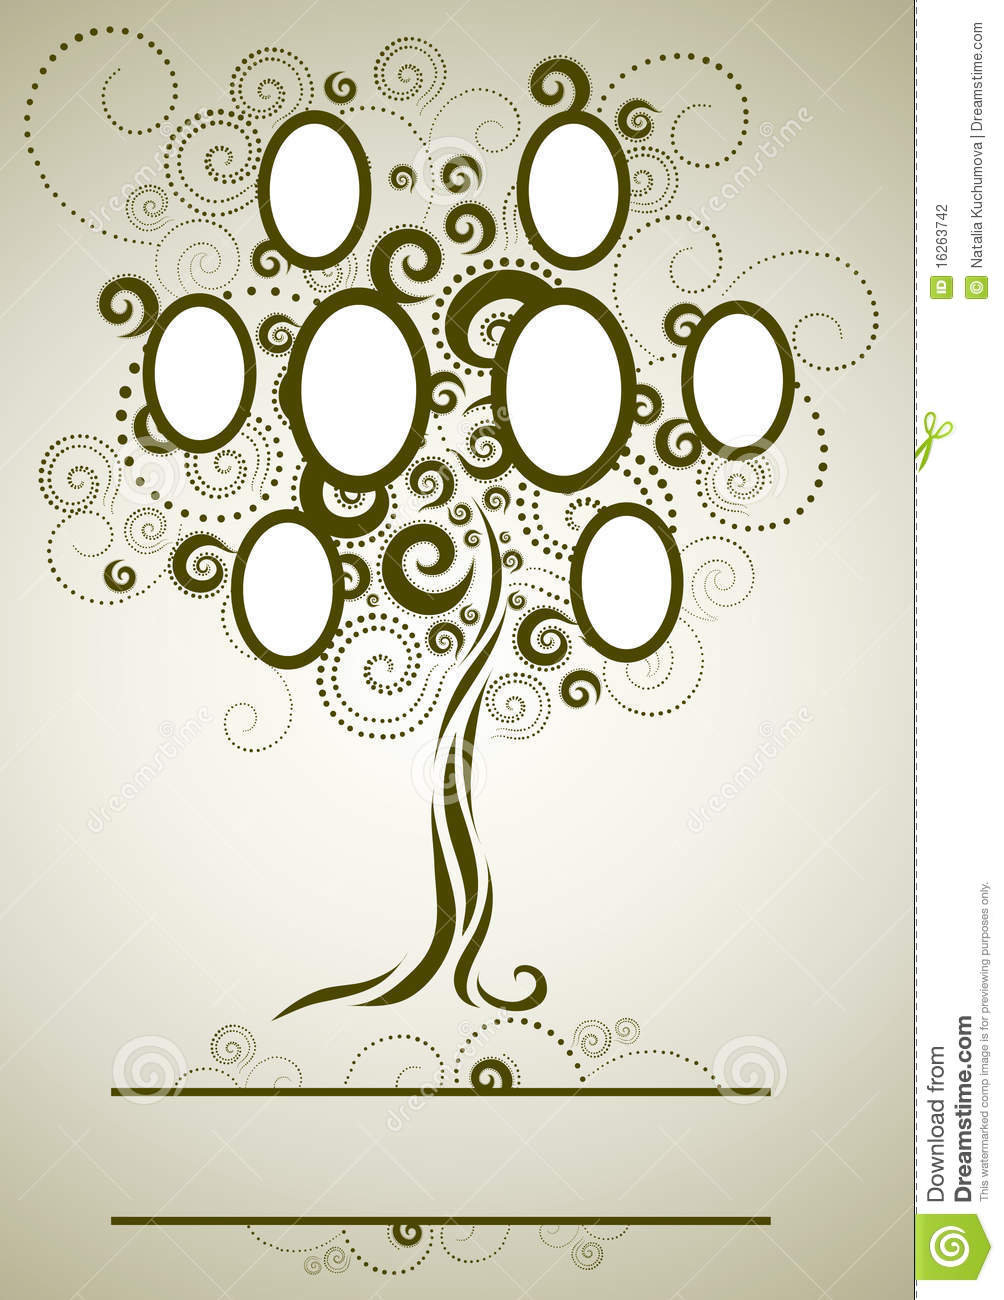 Family Tree Design Ideas family tree picture ideas Keyword Images